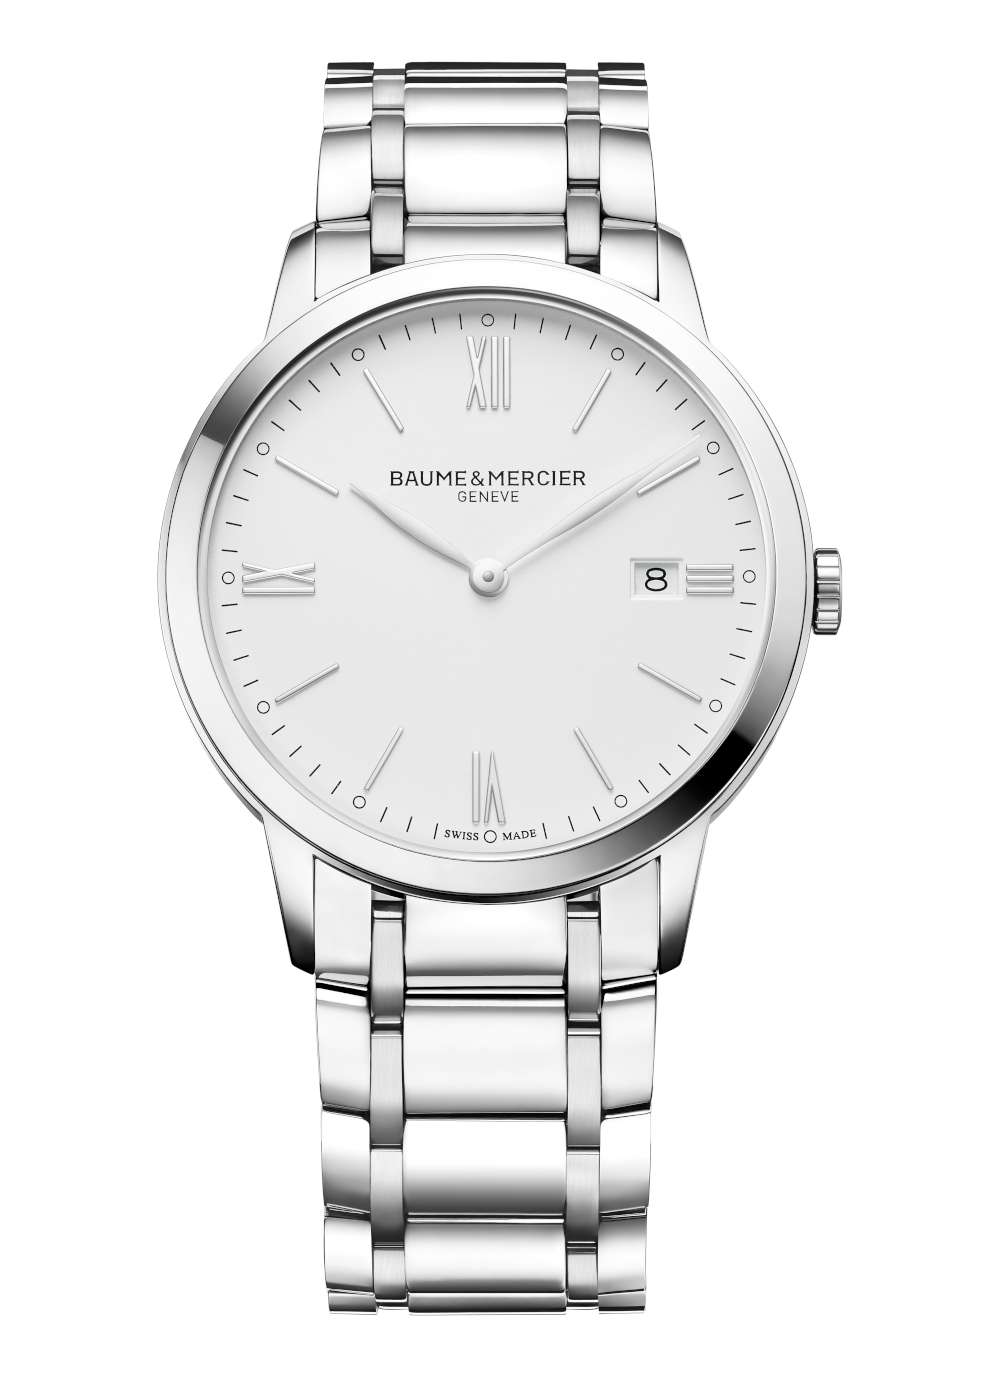 Baume & Mercier My Classima reference 10354